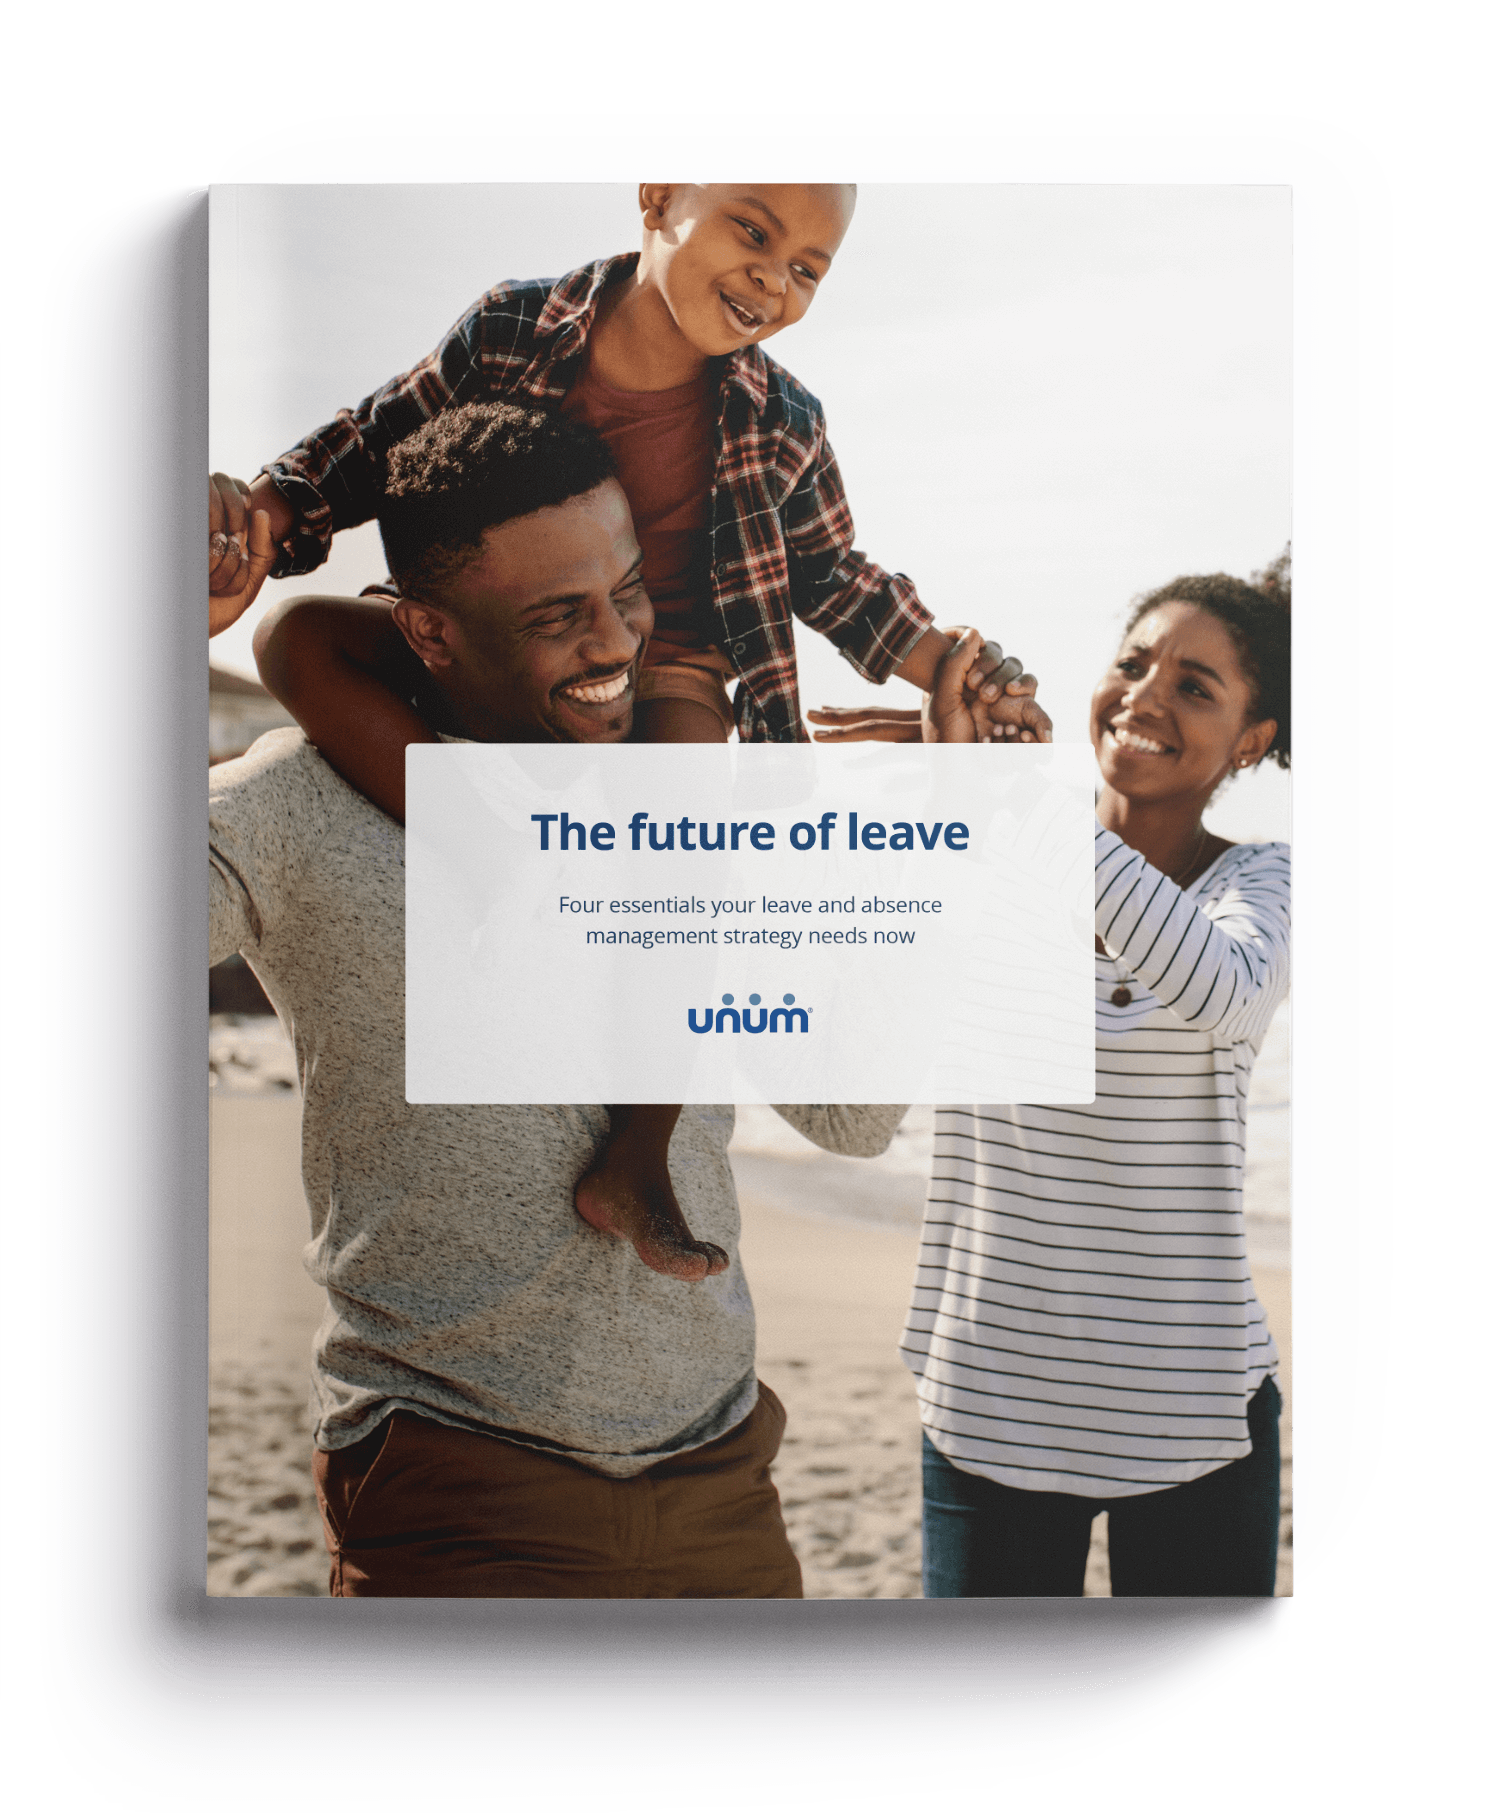 The future of leave ebook cover image